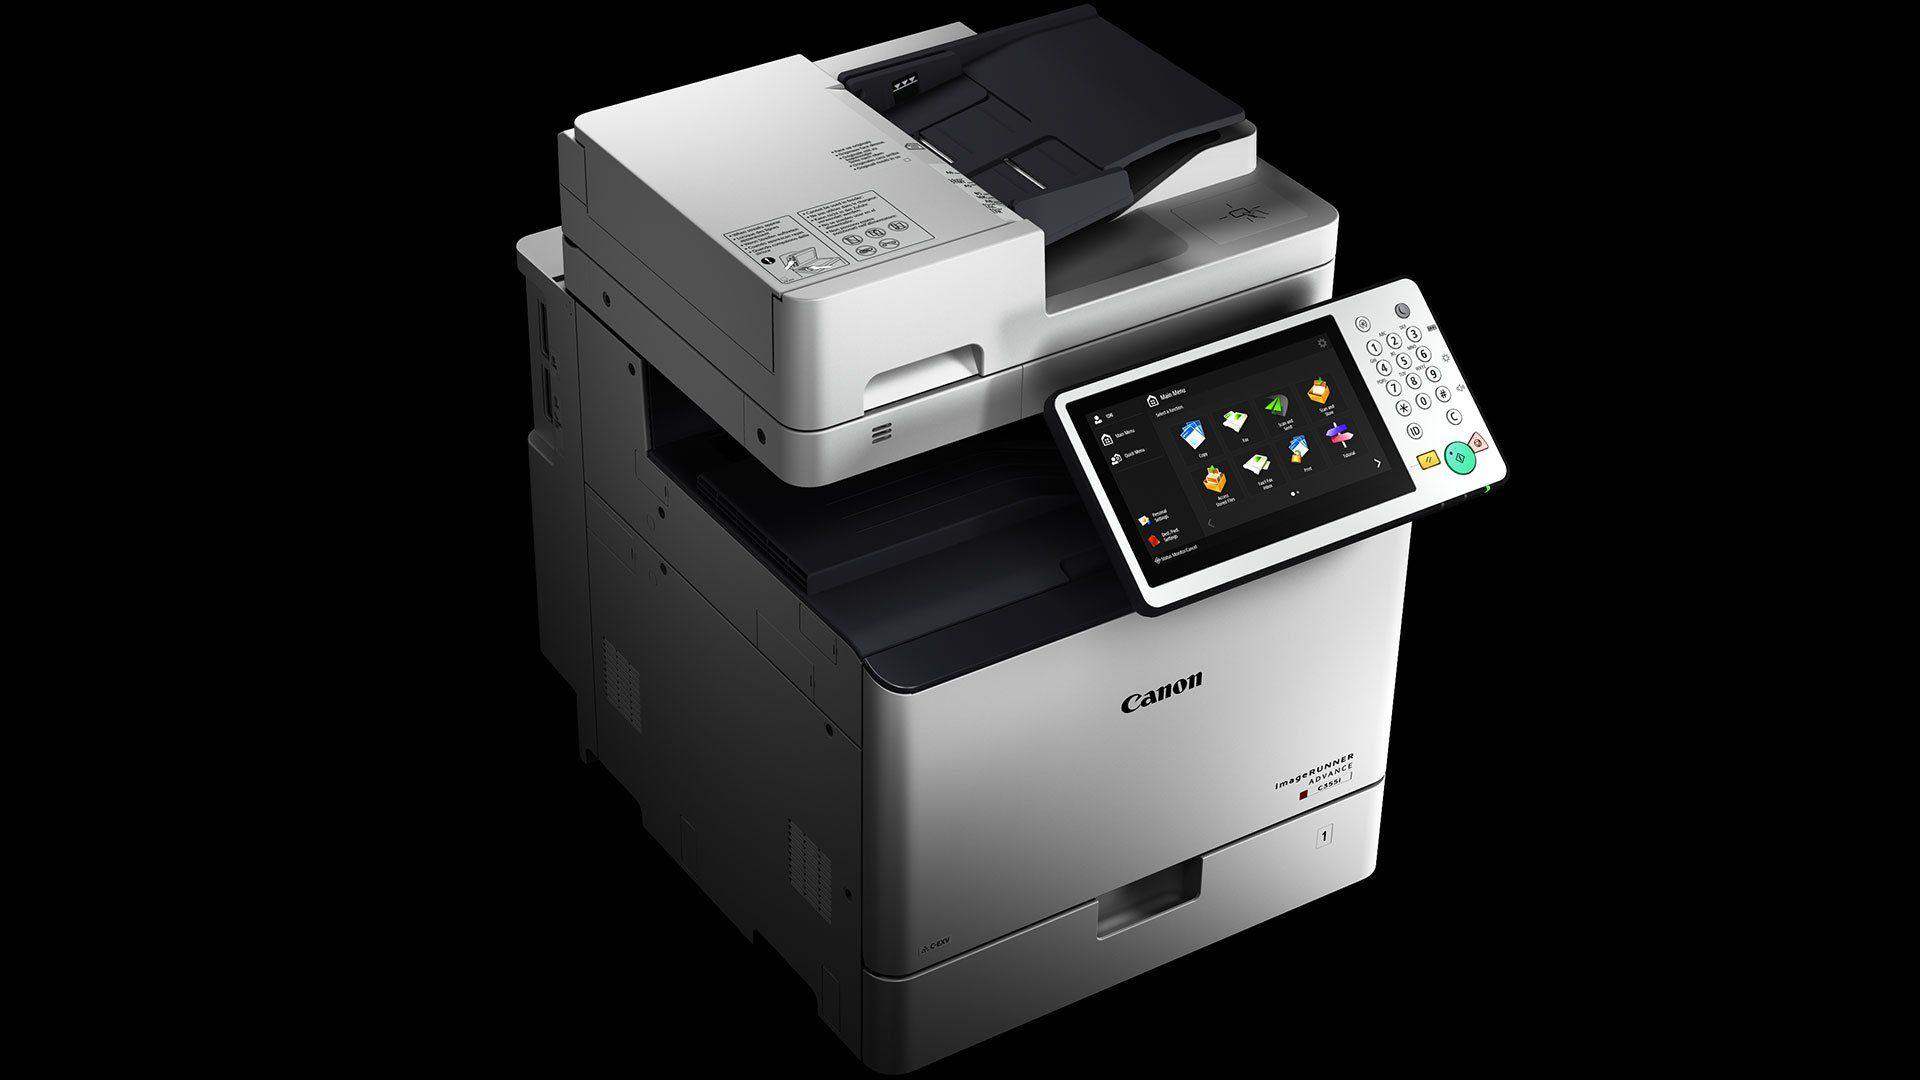 Canon Imagerunner Advance C255 C355 Series Business